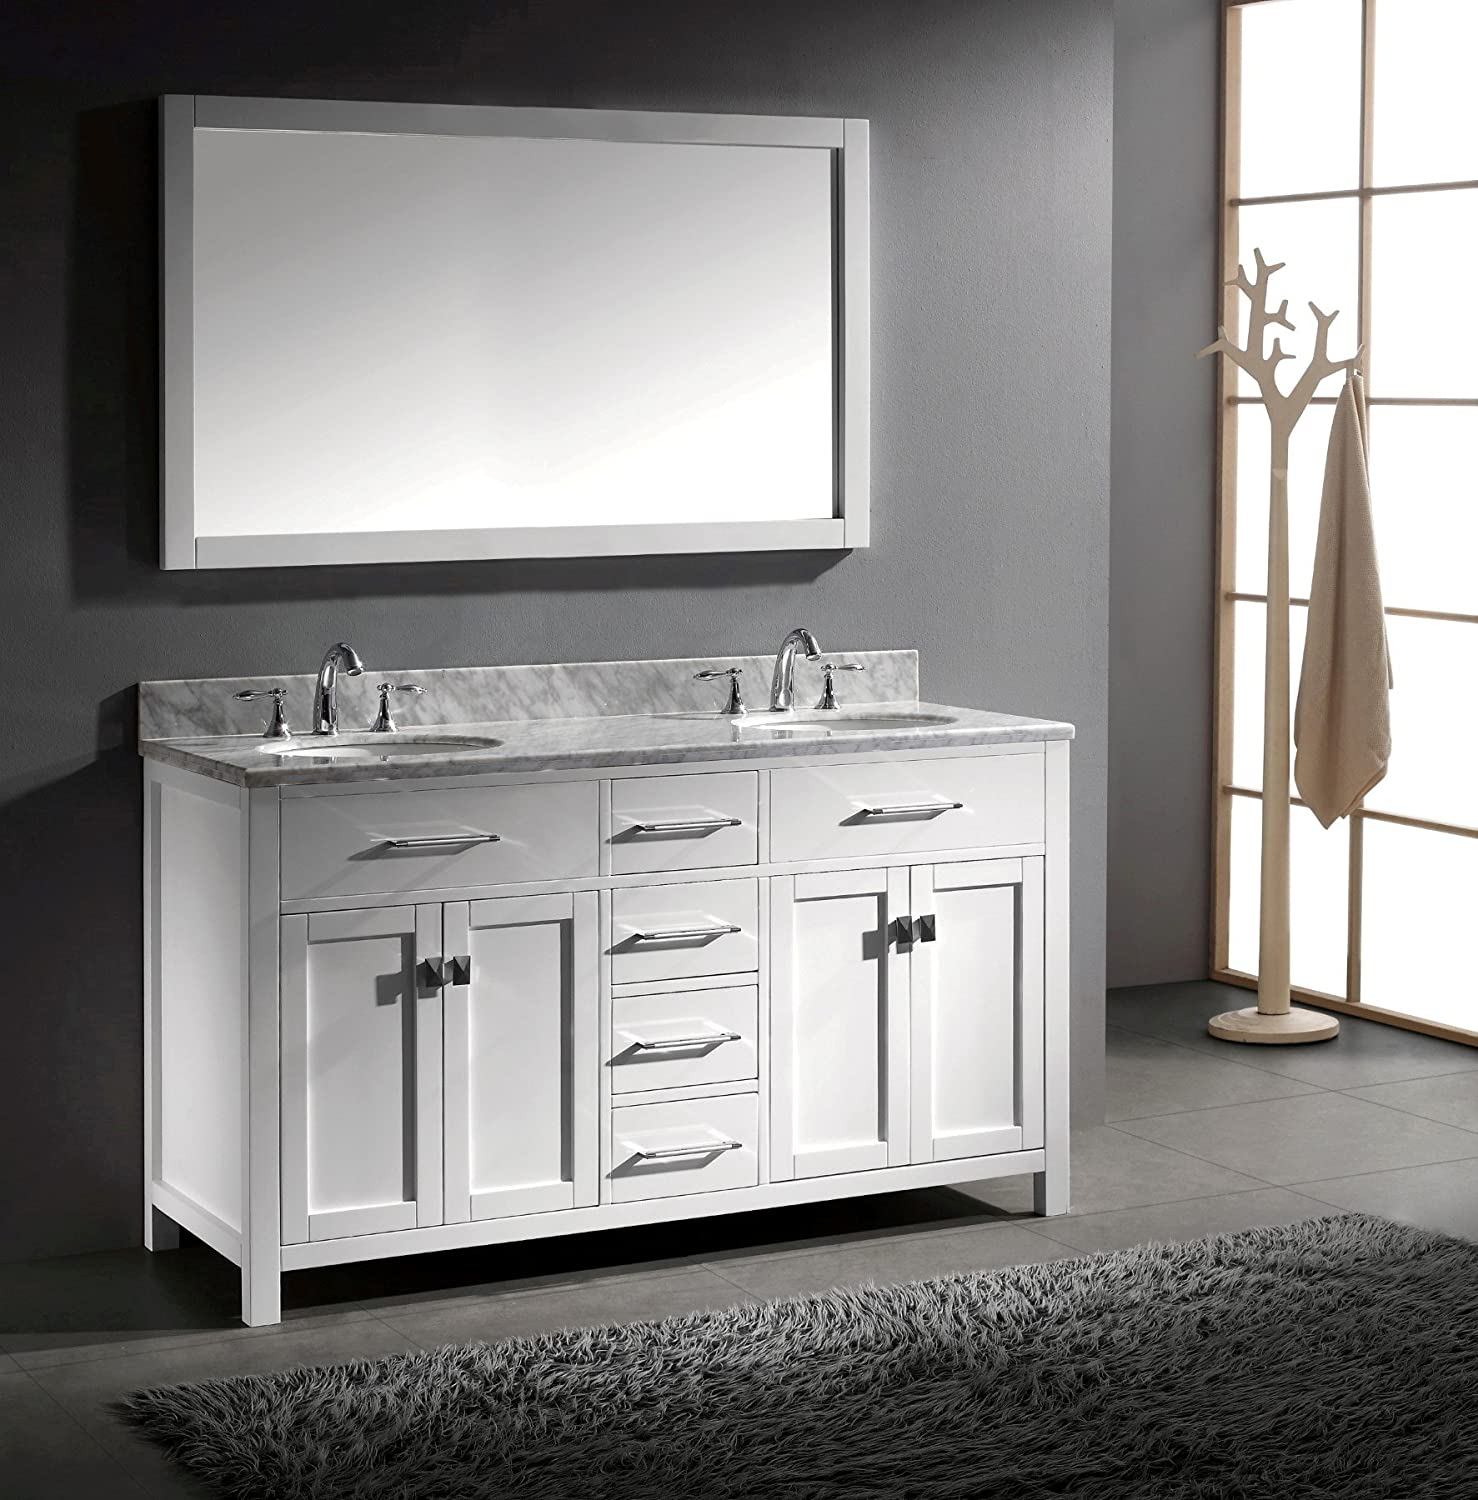 60 Double Sink Bathroom Vanity. Virtu USA MD 2060 WMRO WH Caroline 60 Inch Bathroom Vanity with Double  Round Sinks in White and Italian Carrera Marble Amazon com